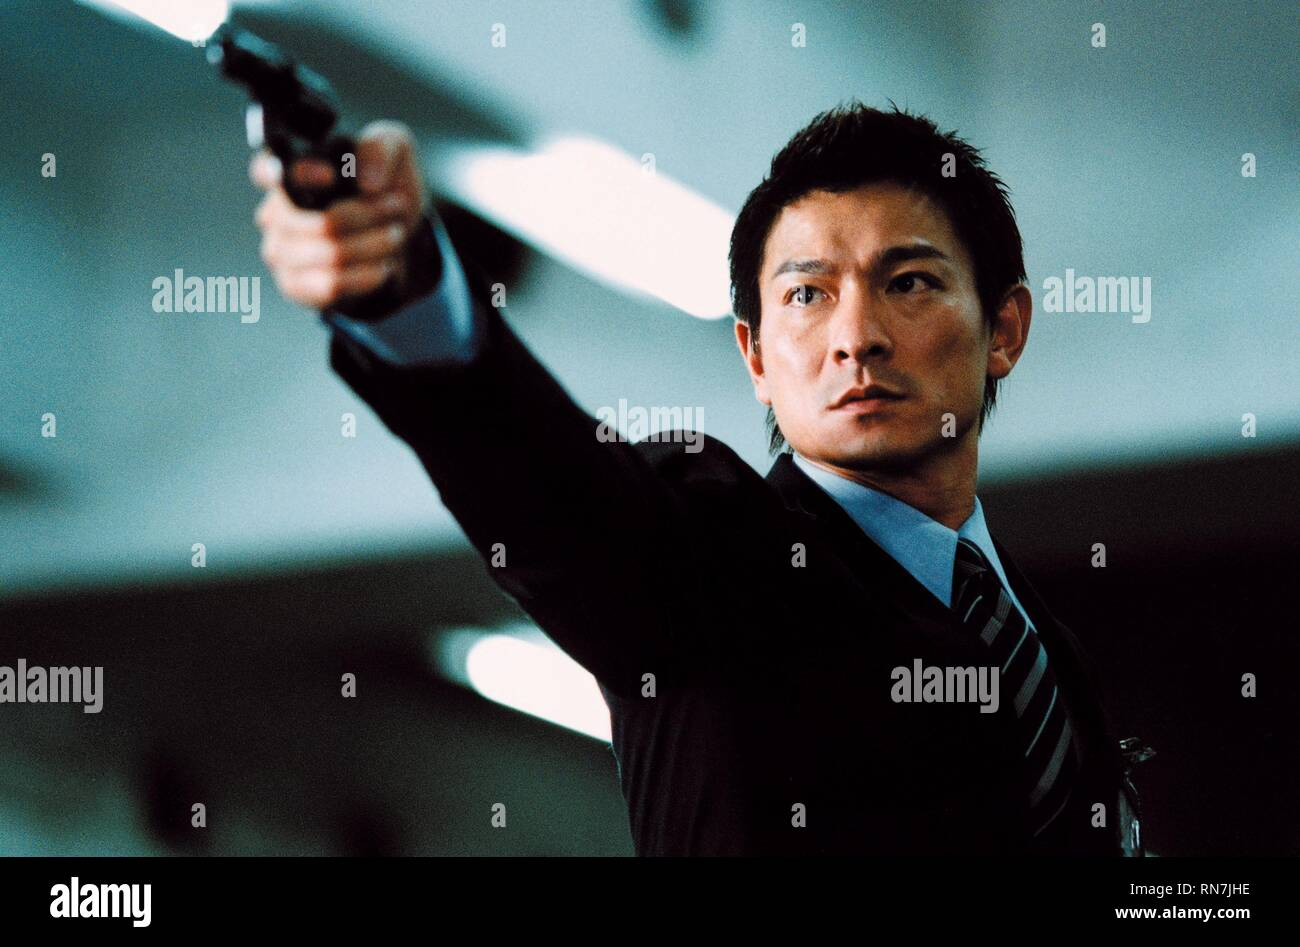 ANDY LAU, INFERNAL AFFAIRS, 2002 - Stock Image